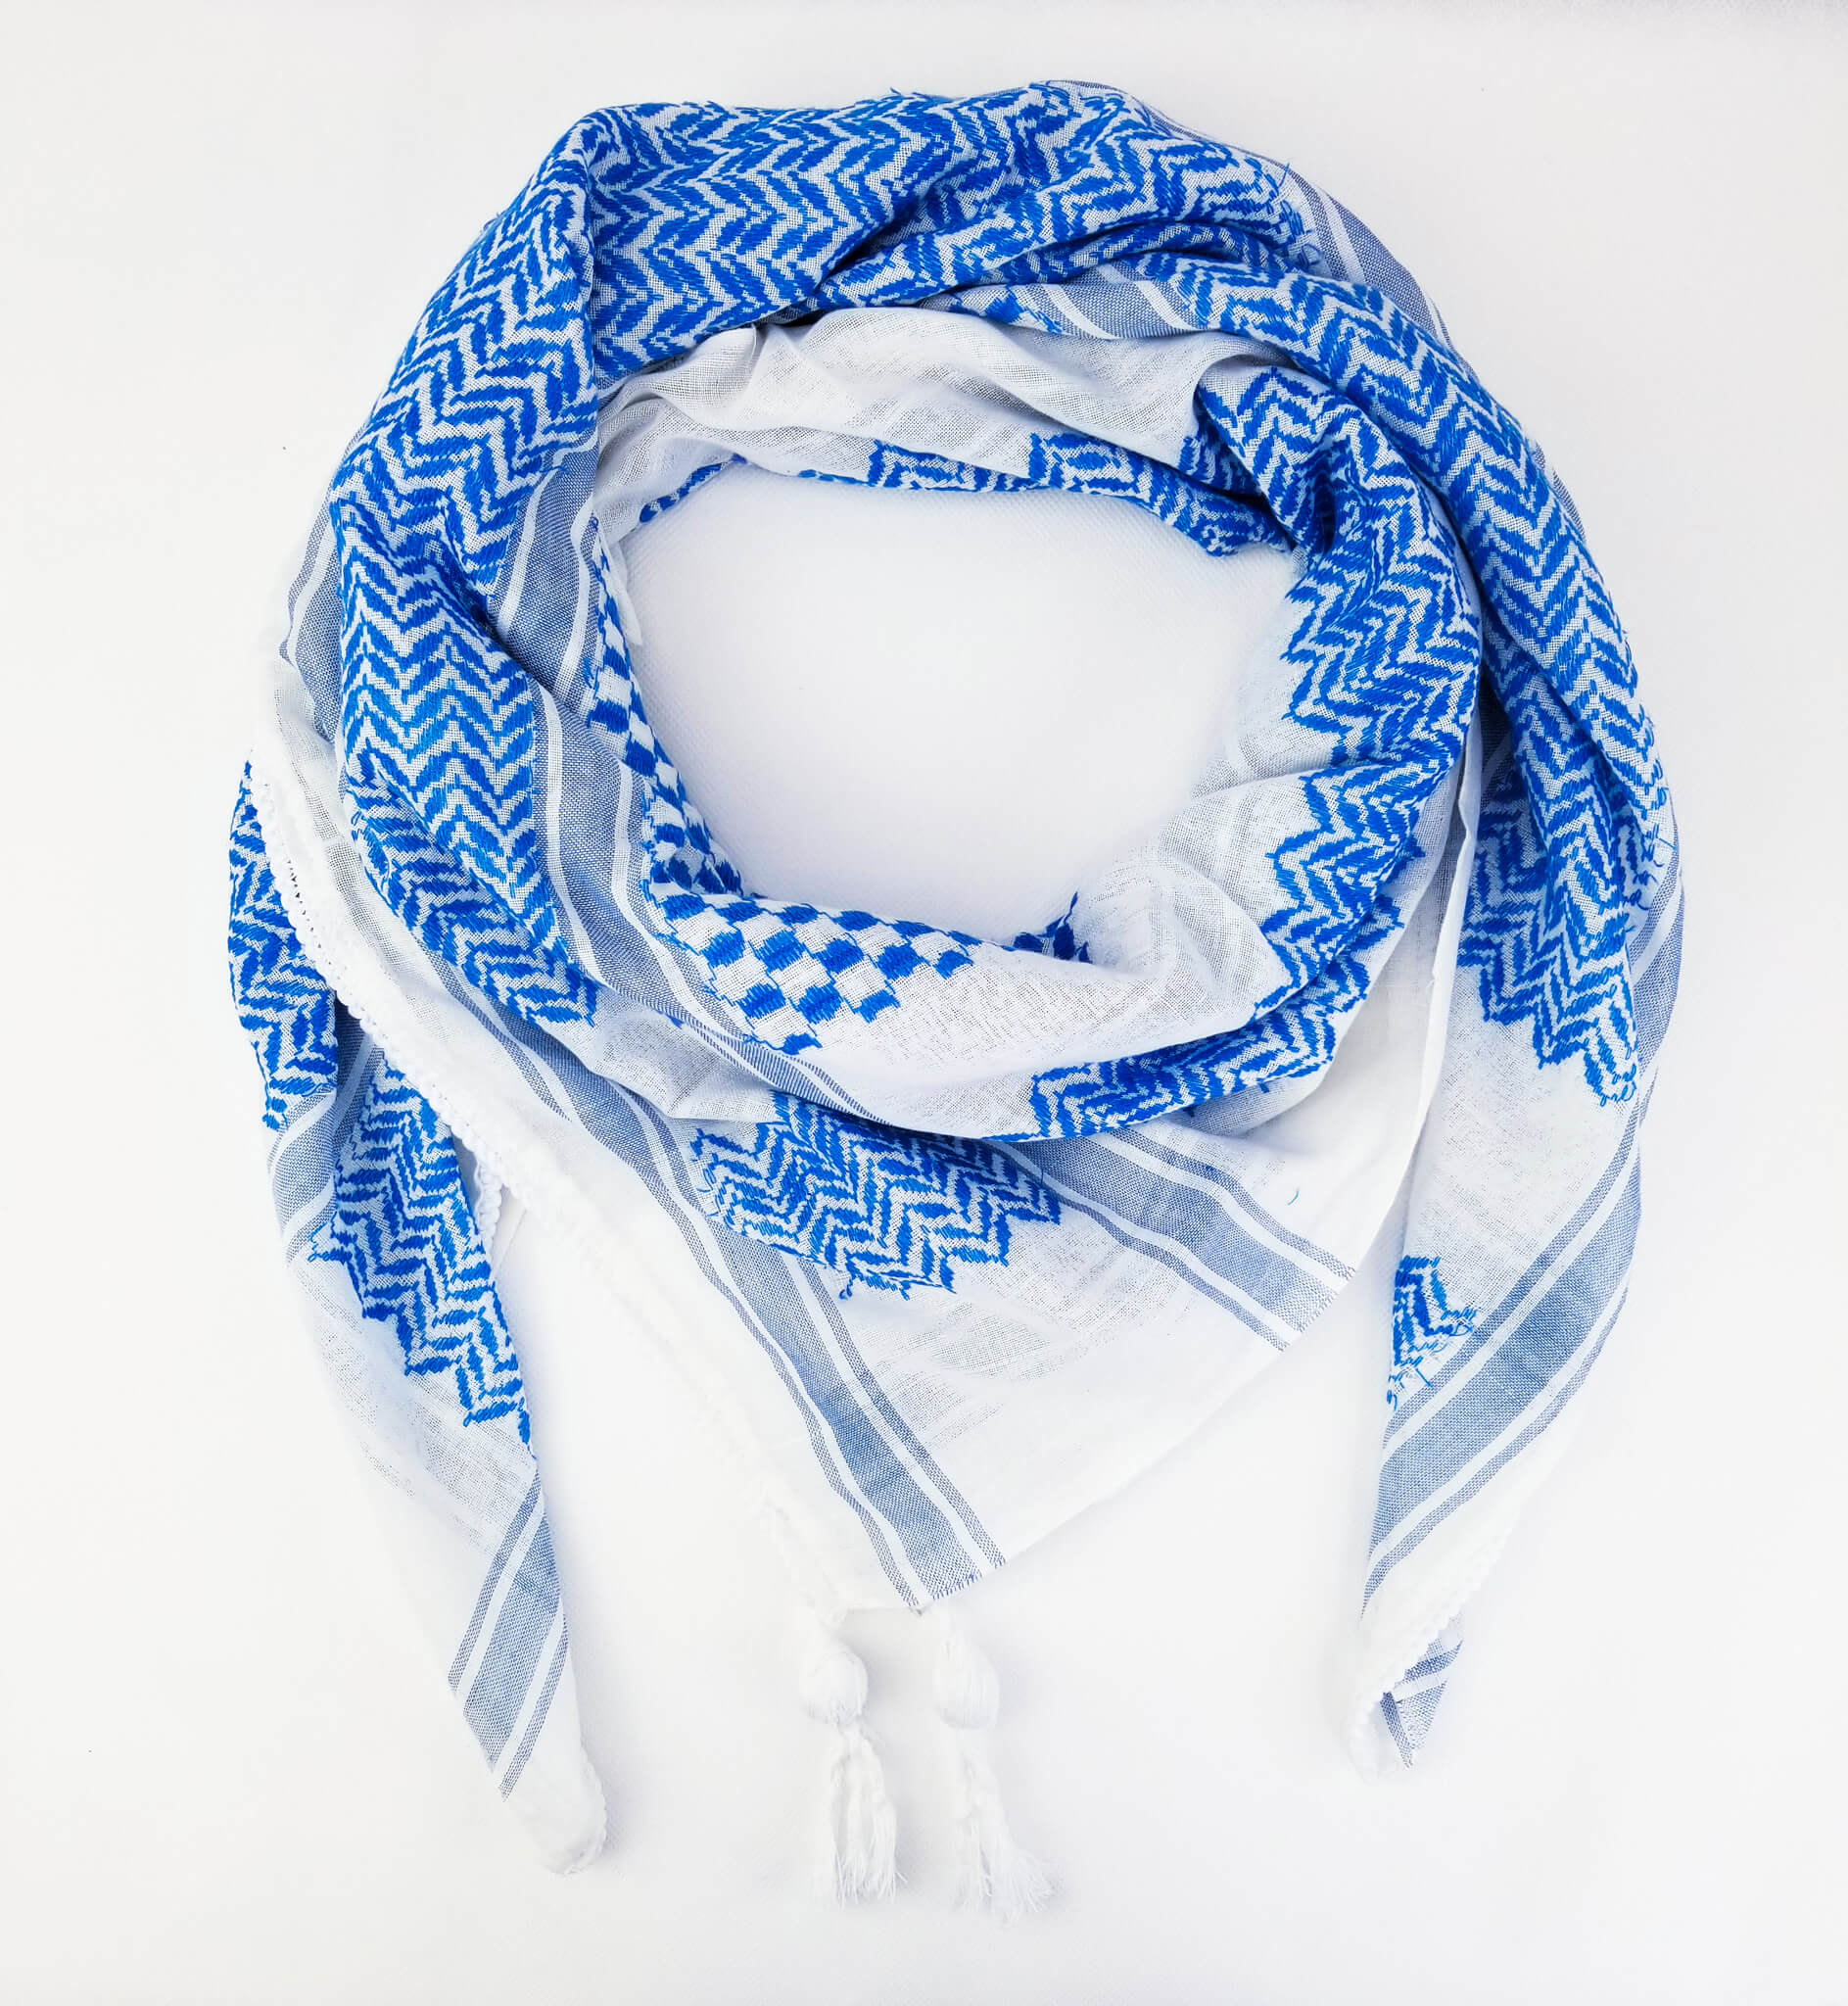 Hirbawi Keffiyeh Scarf Made in Palestine - the Blue and White Shemagh